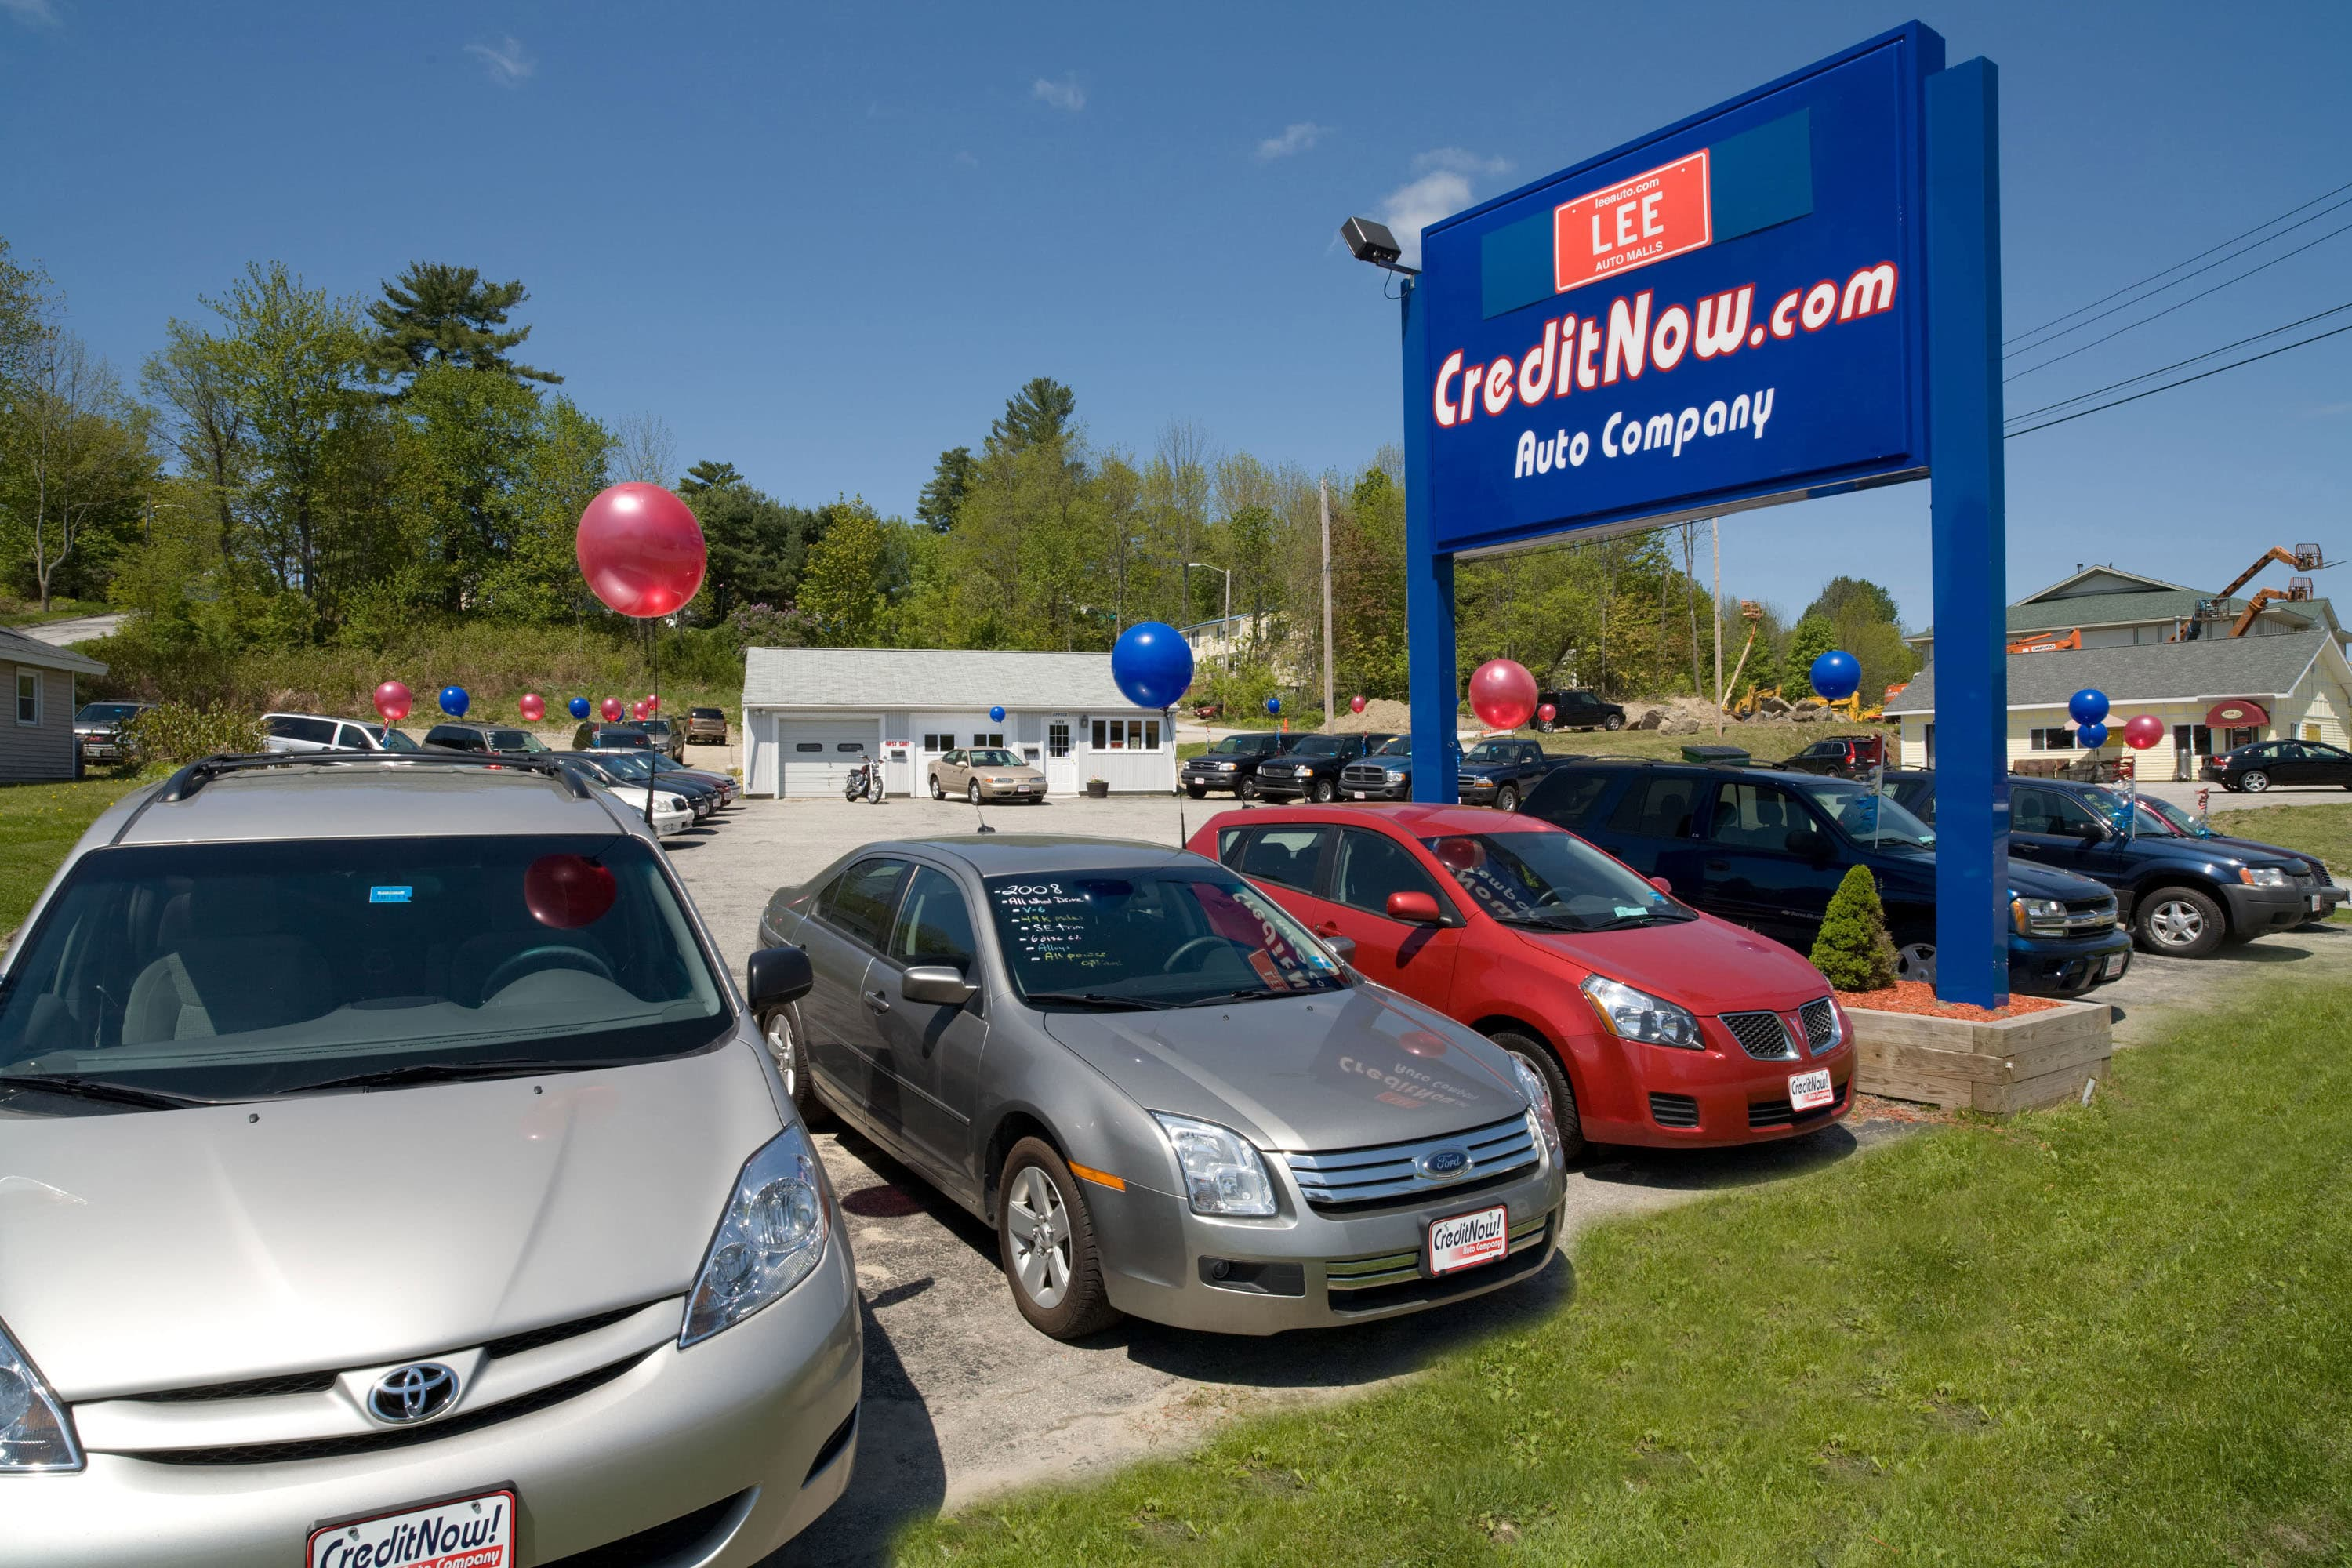 cars for sale near me now luxury auburn maine used cars lee cred used cars. Black Bedroom Furniture Sets. Home Design Ideas